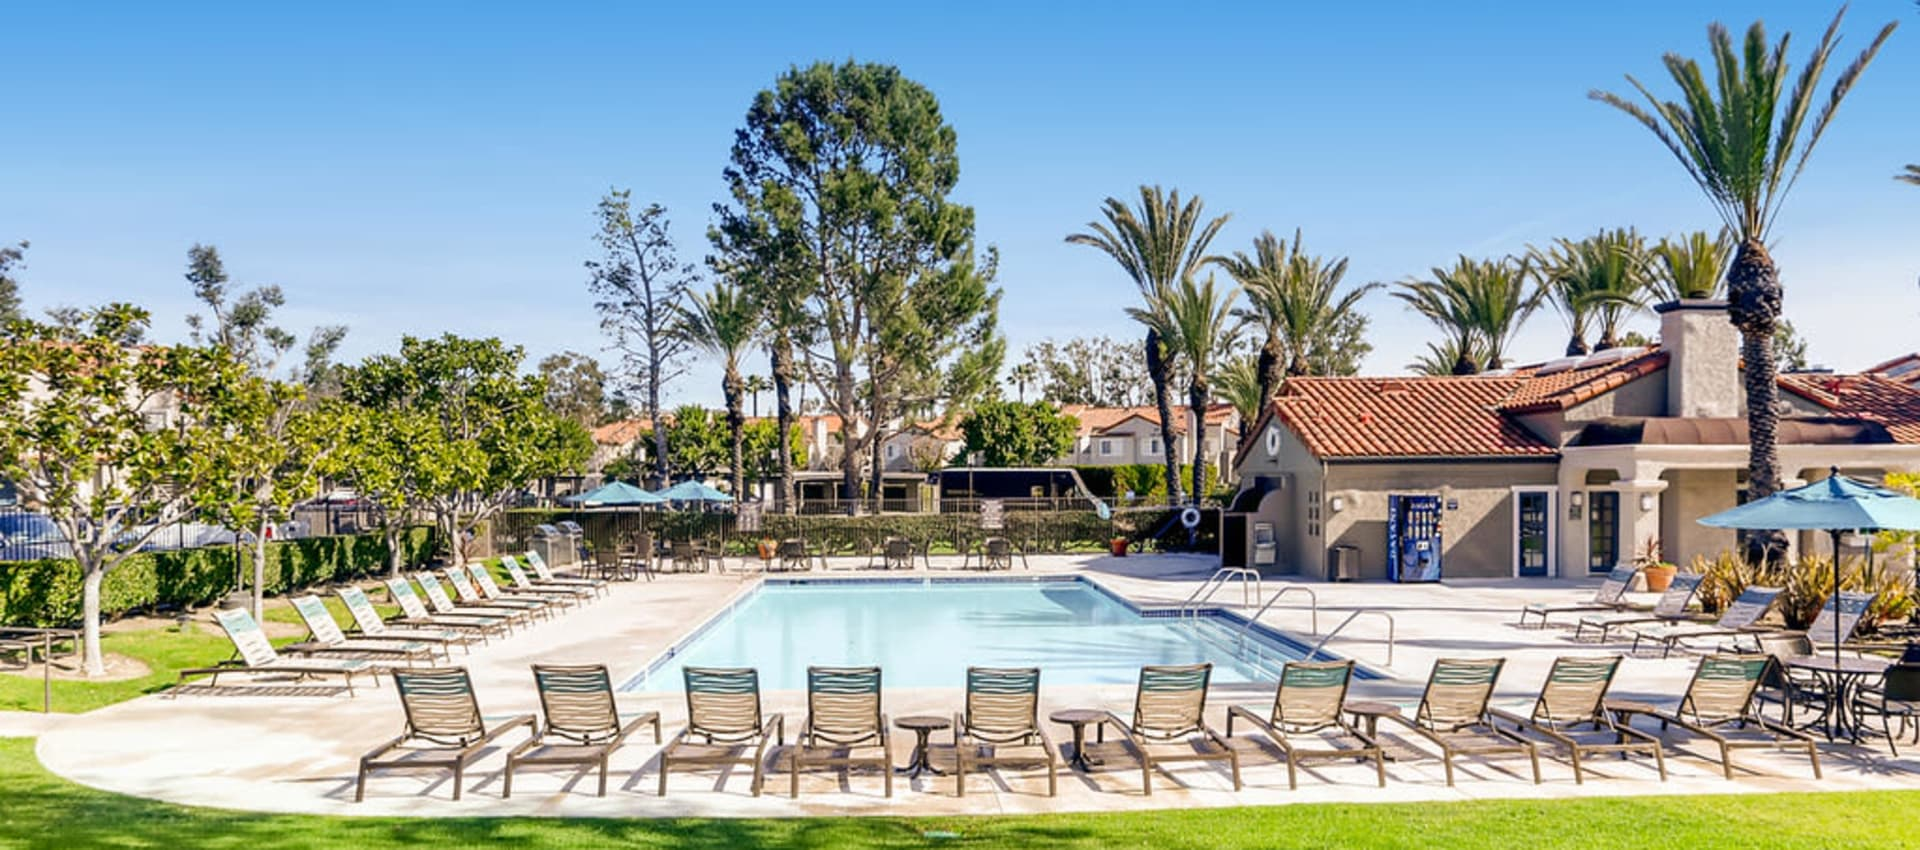 Pool at Hidden Hills Condominium Rentals in Laguna Niguel, California